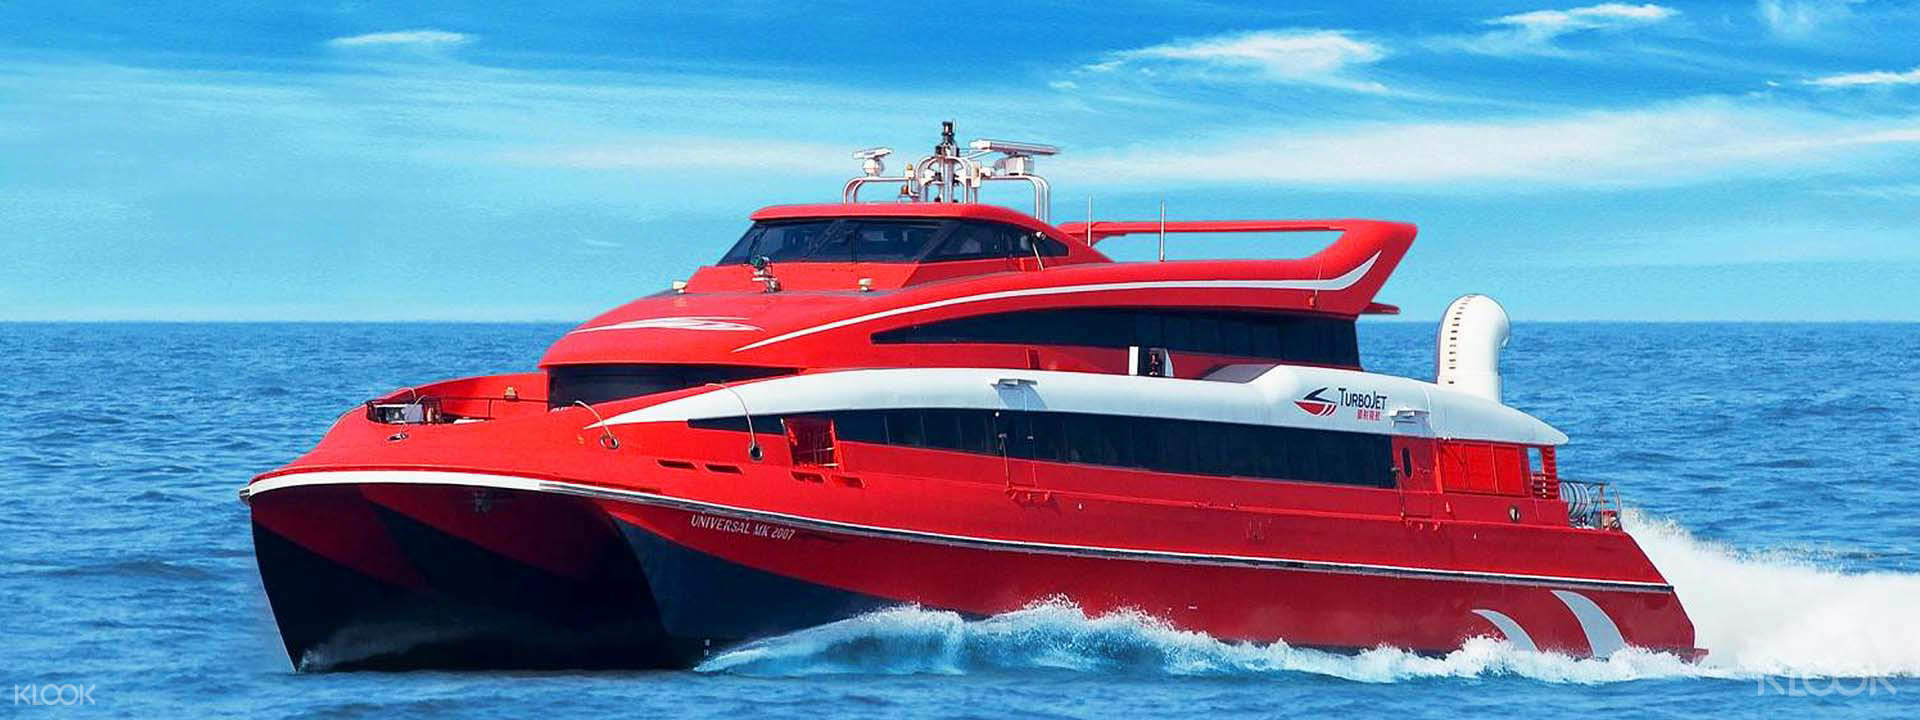 TurboJet Ferry Tickets (Hong Kong Pick Up)""